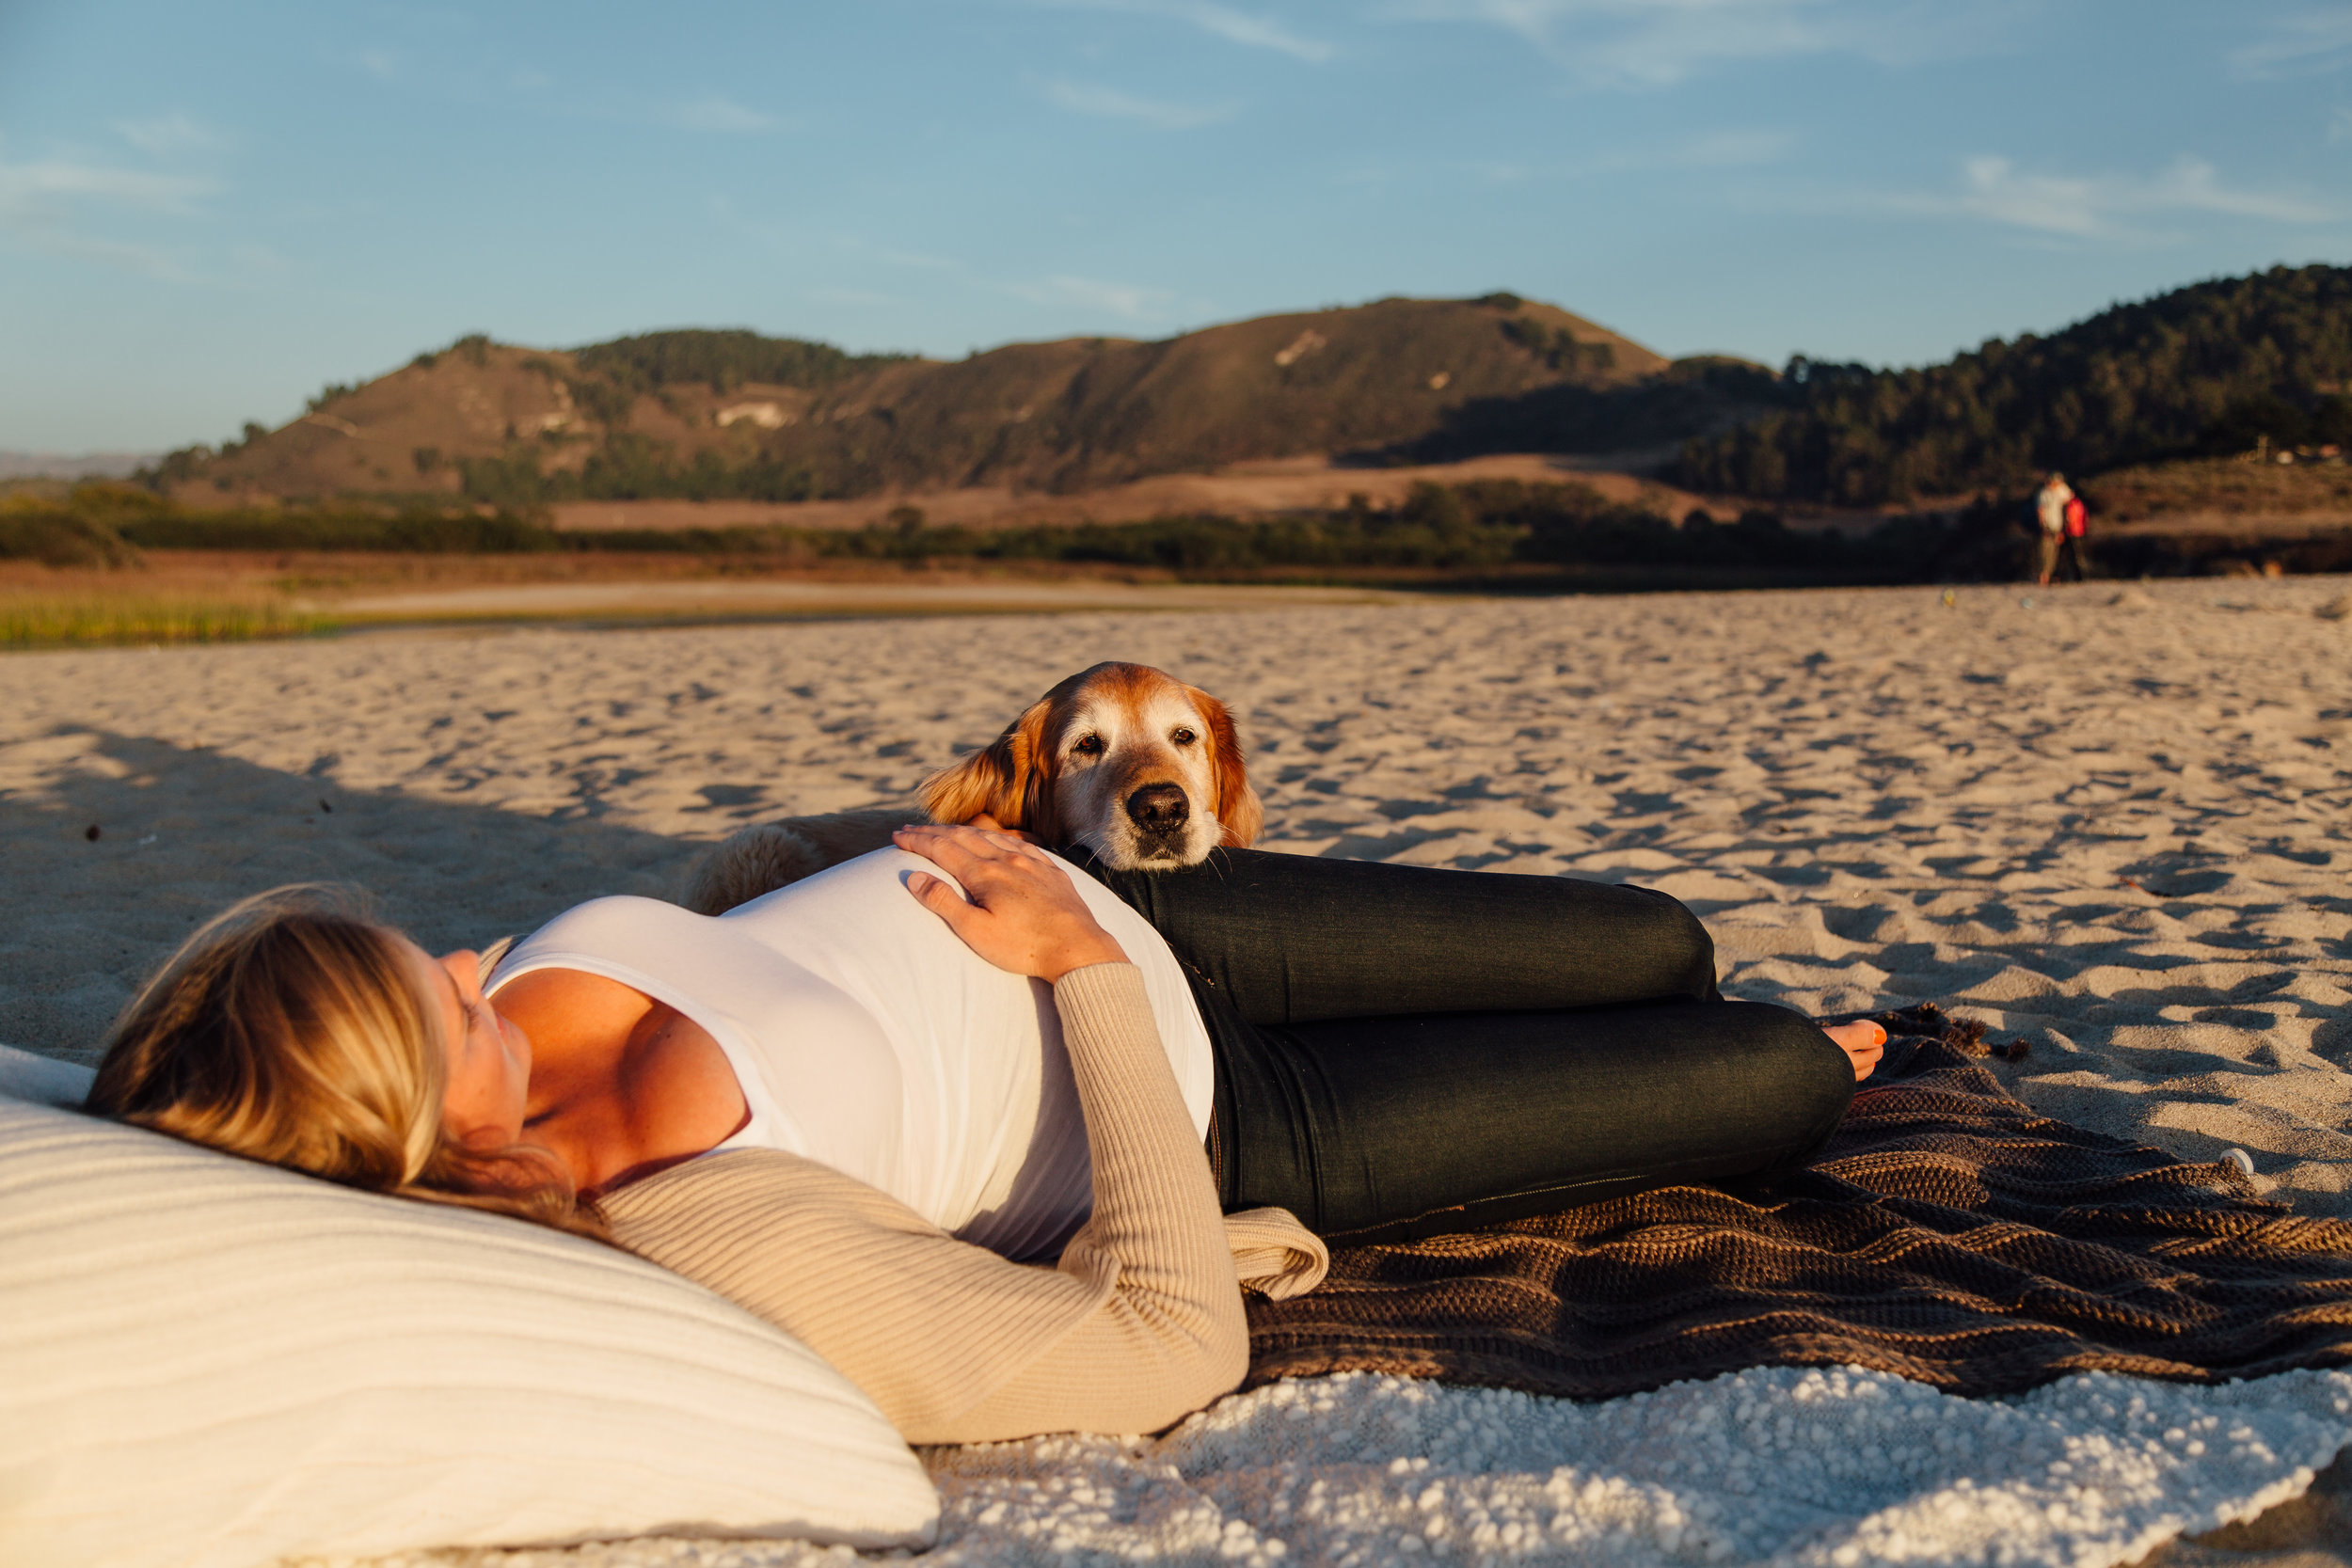 Pregnancy_Kindra&Connell_20140916_2274.jpg